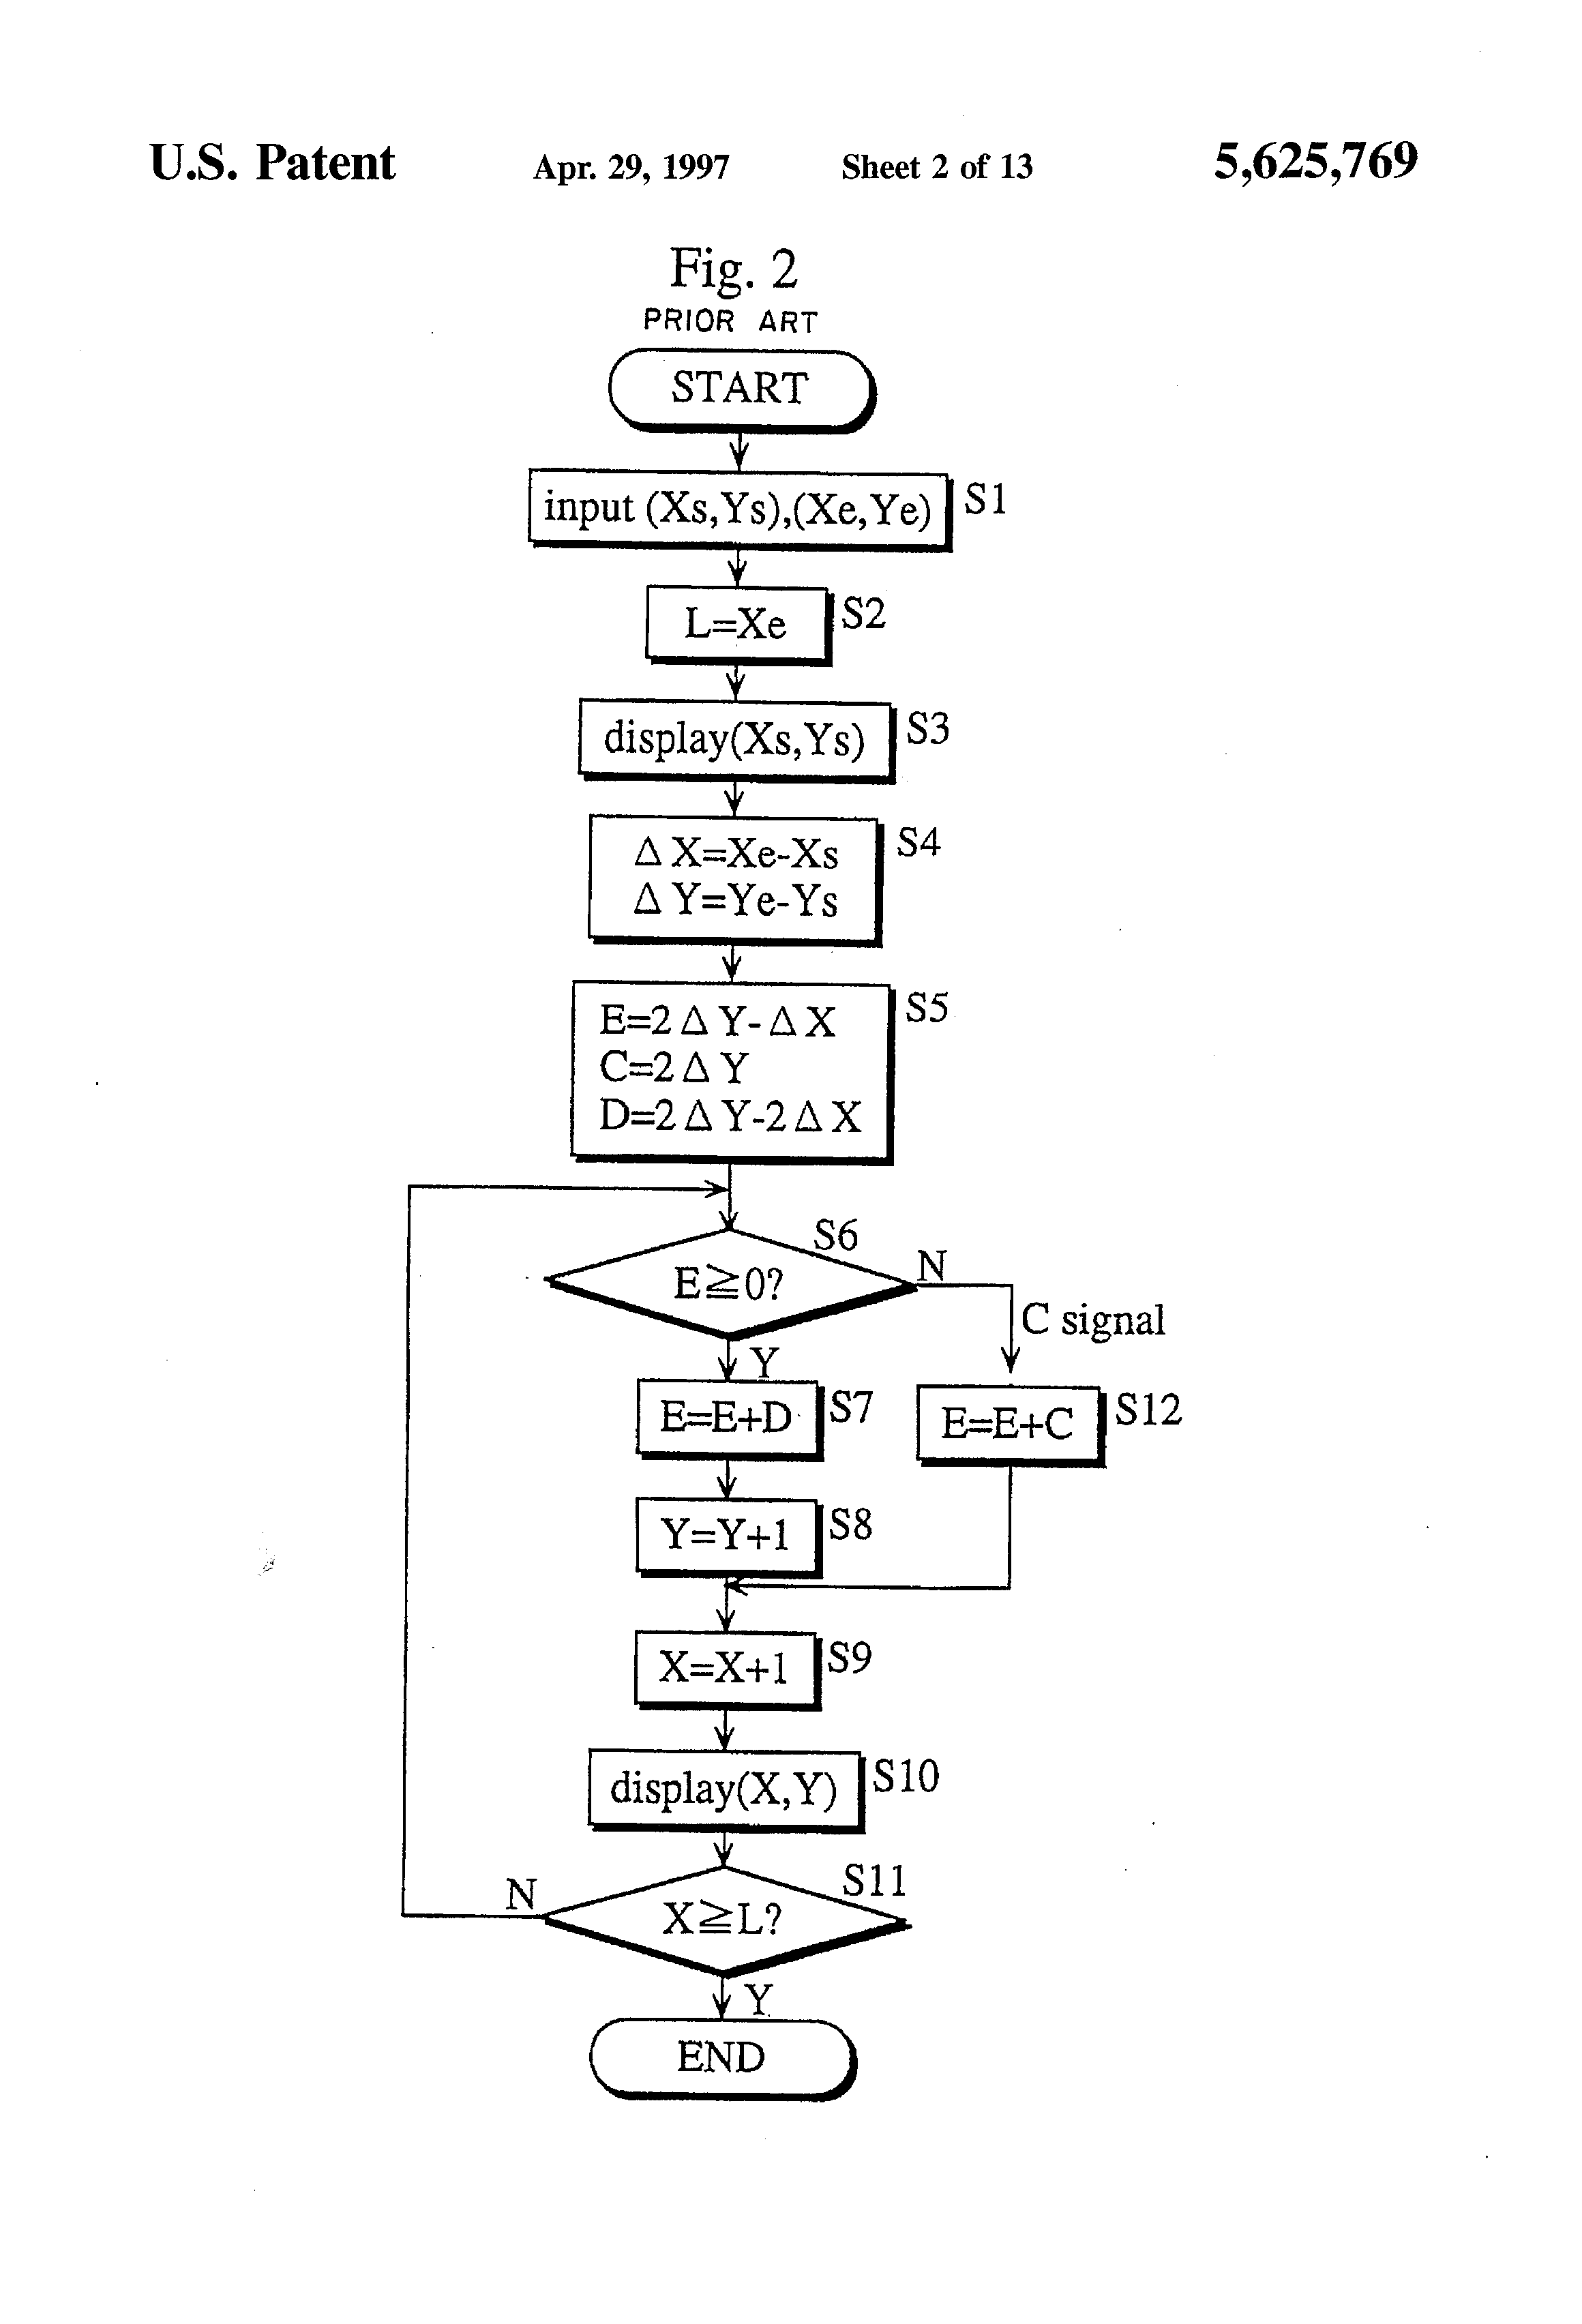 Bresenham Line Drawing Algorithm Doc : Patent us apparatus for and method of generating